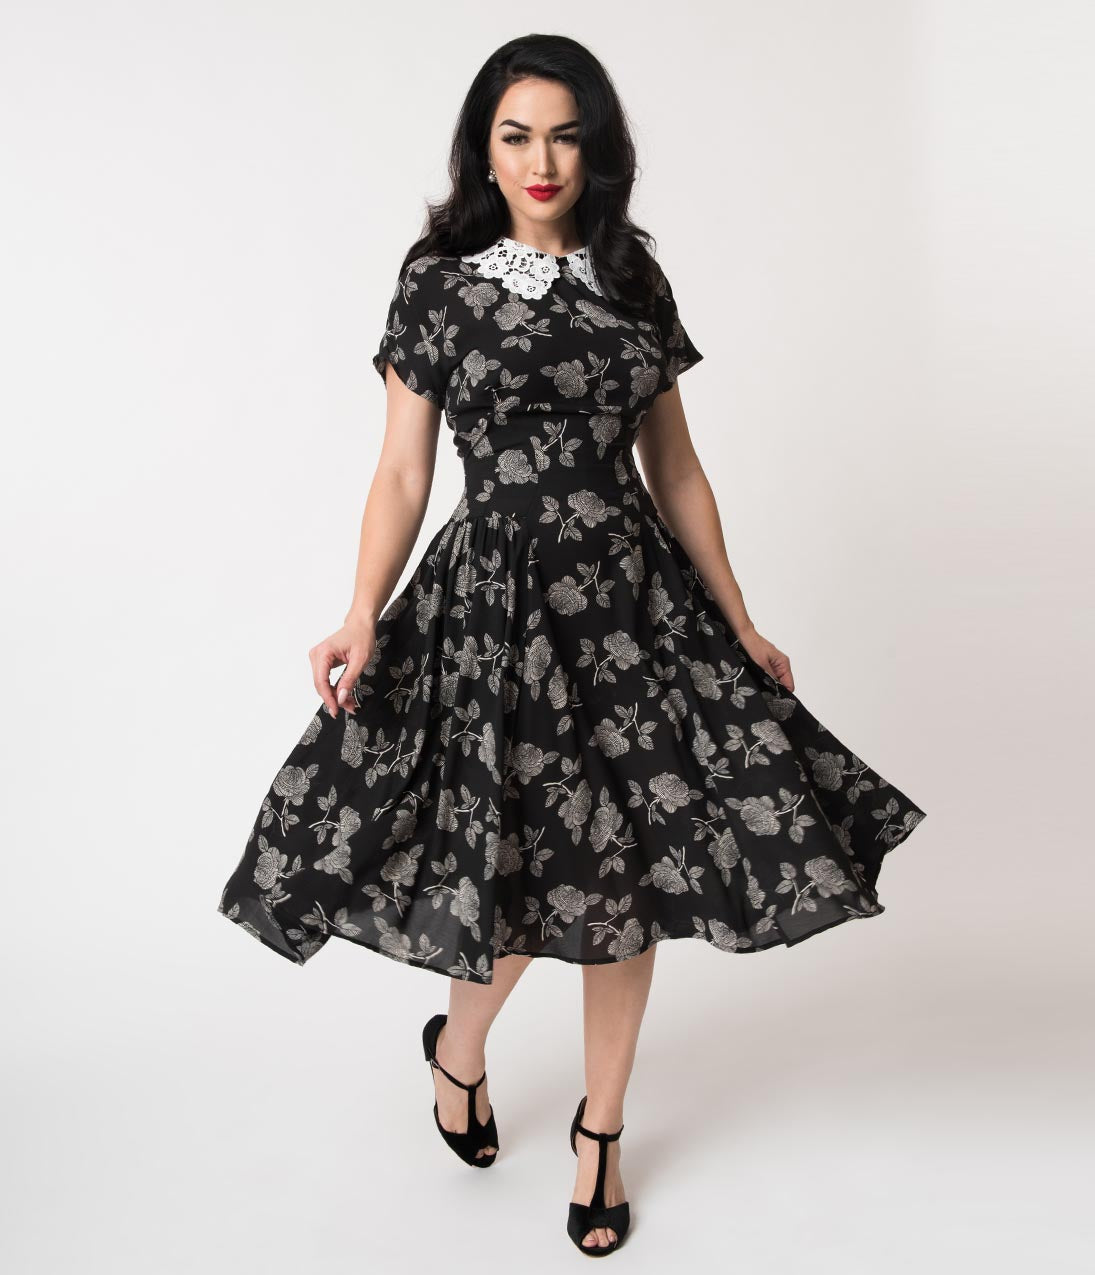 Vintage Tea Dresses, Floral Tea Dresses, Tea Length Dresses Unique Vintage 1940S Black  White Floral Lace Collar Margie Dress $88.00 AT vintagedancer.com